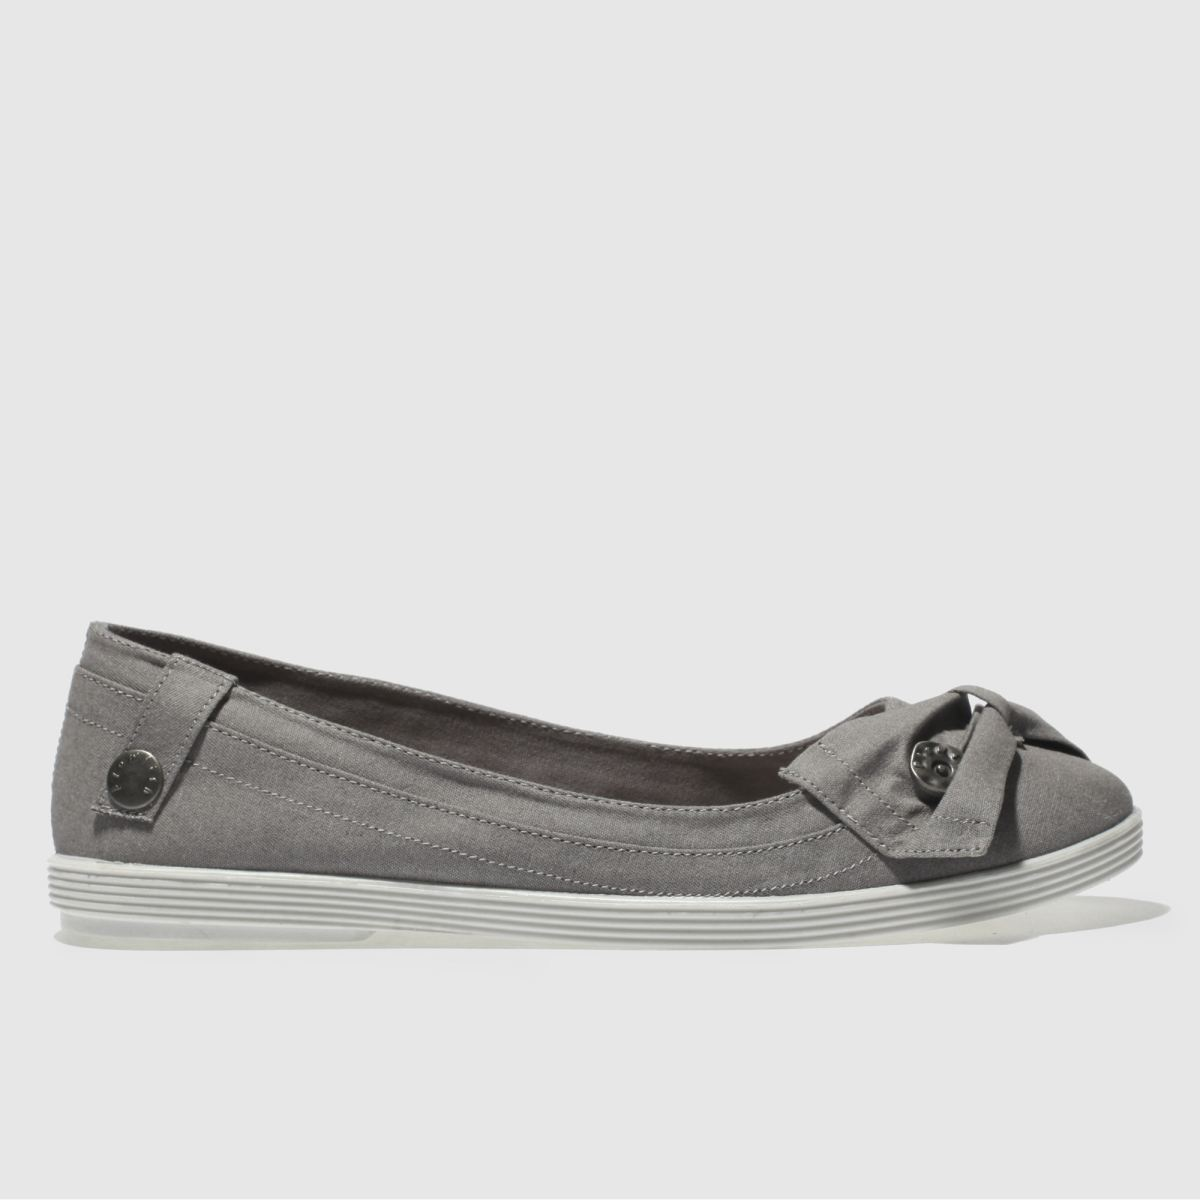 Blowfish Grey Gimlet Flat Shoes